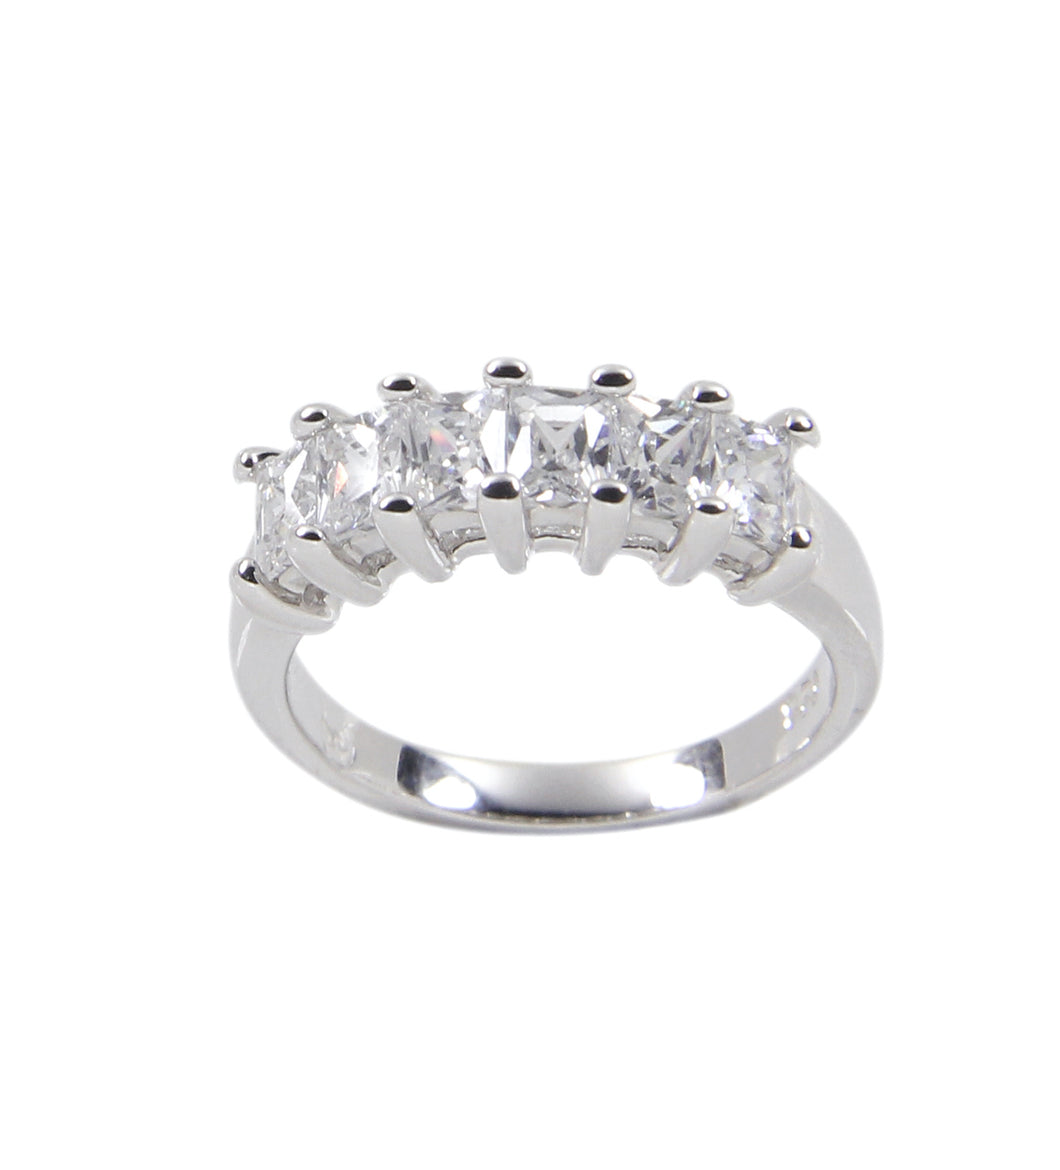 Anniversary Band Ring in Sterling Silver W/ Six Princess Cut Clear Cubic Zirconia